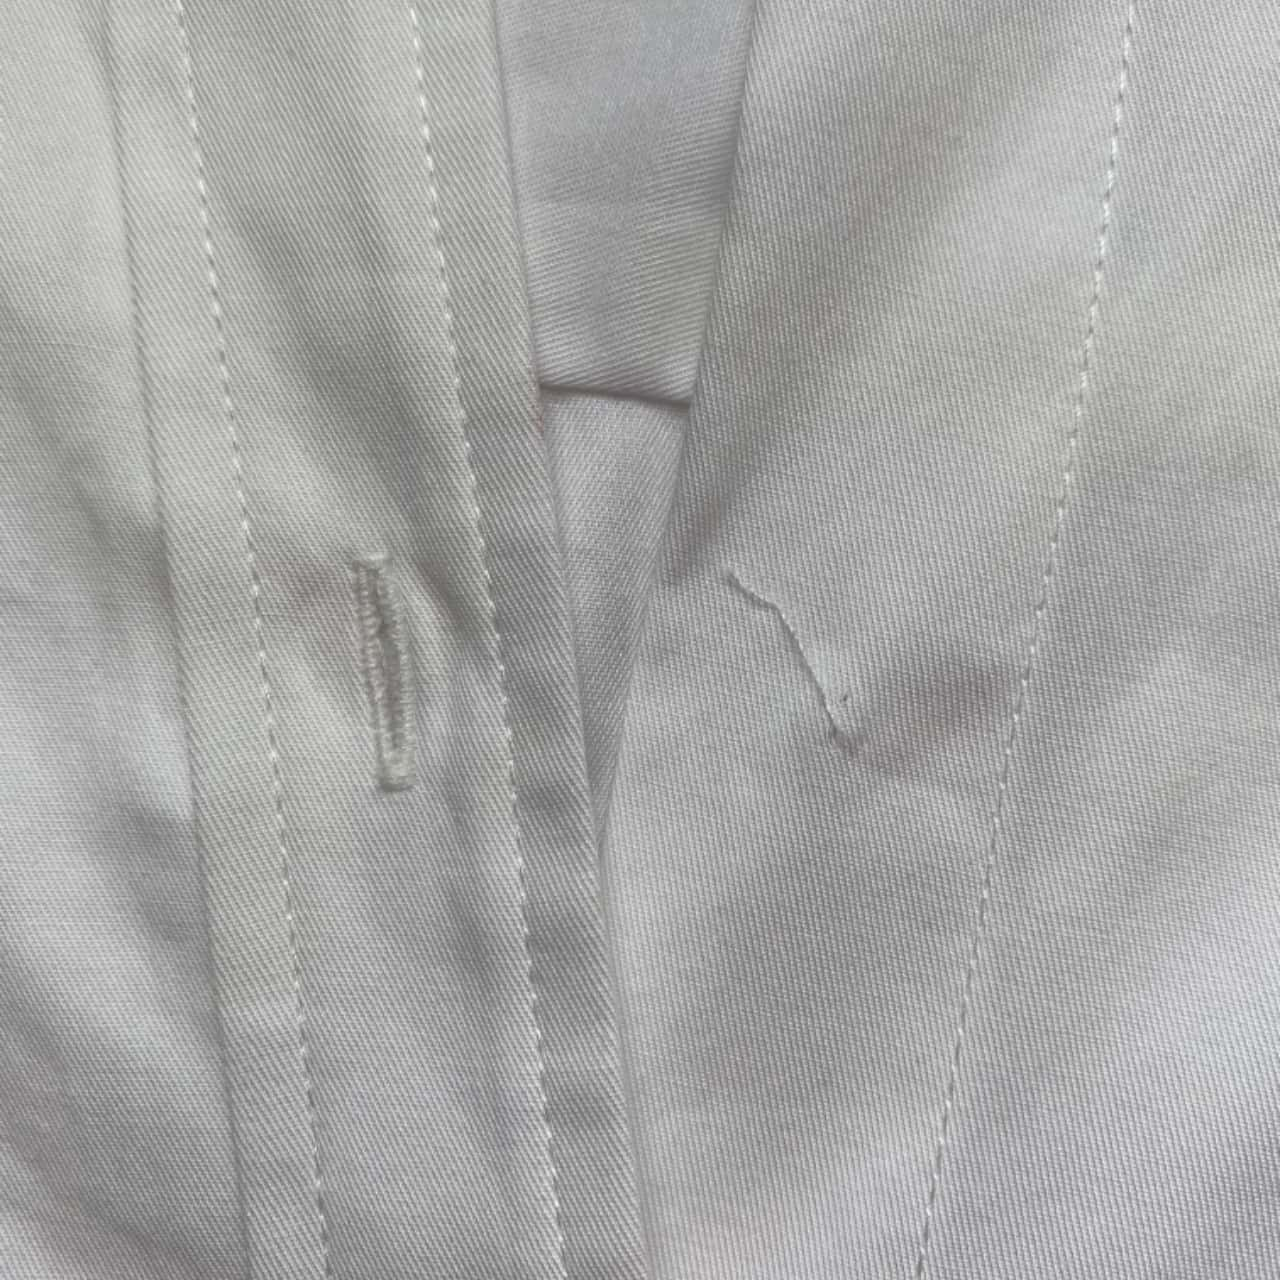 ** REDUCED ** Sussan Women's Size 8 White Long Sleeve Shirt - New With Tags